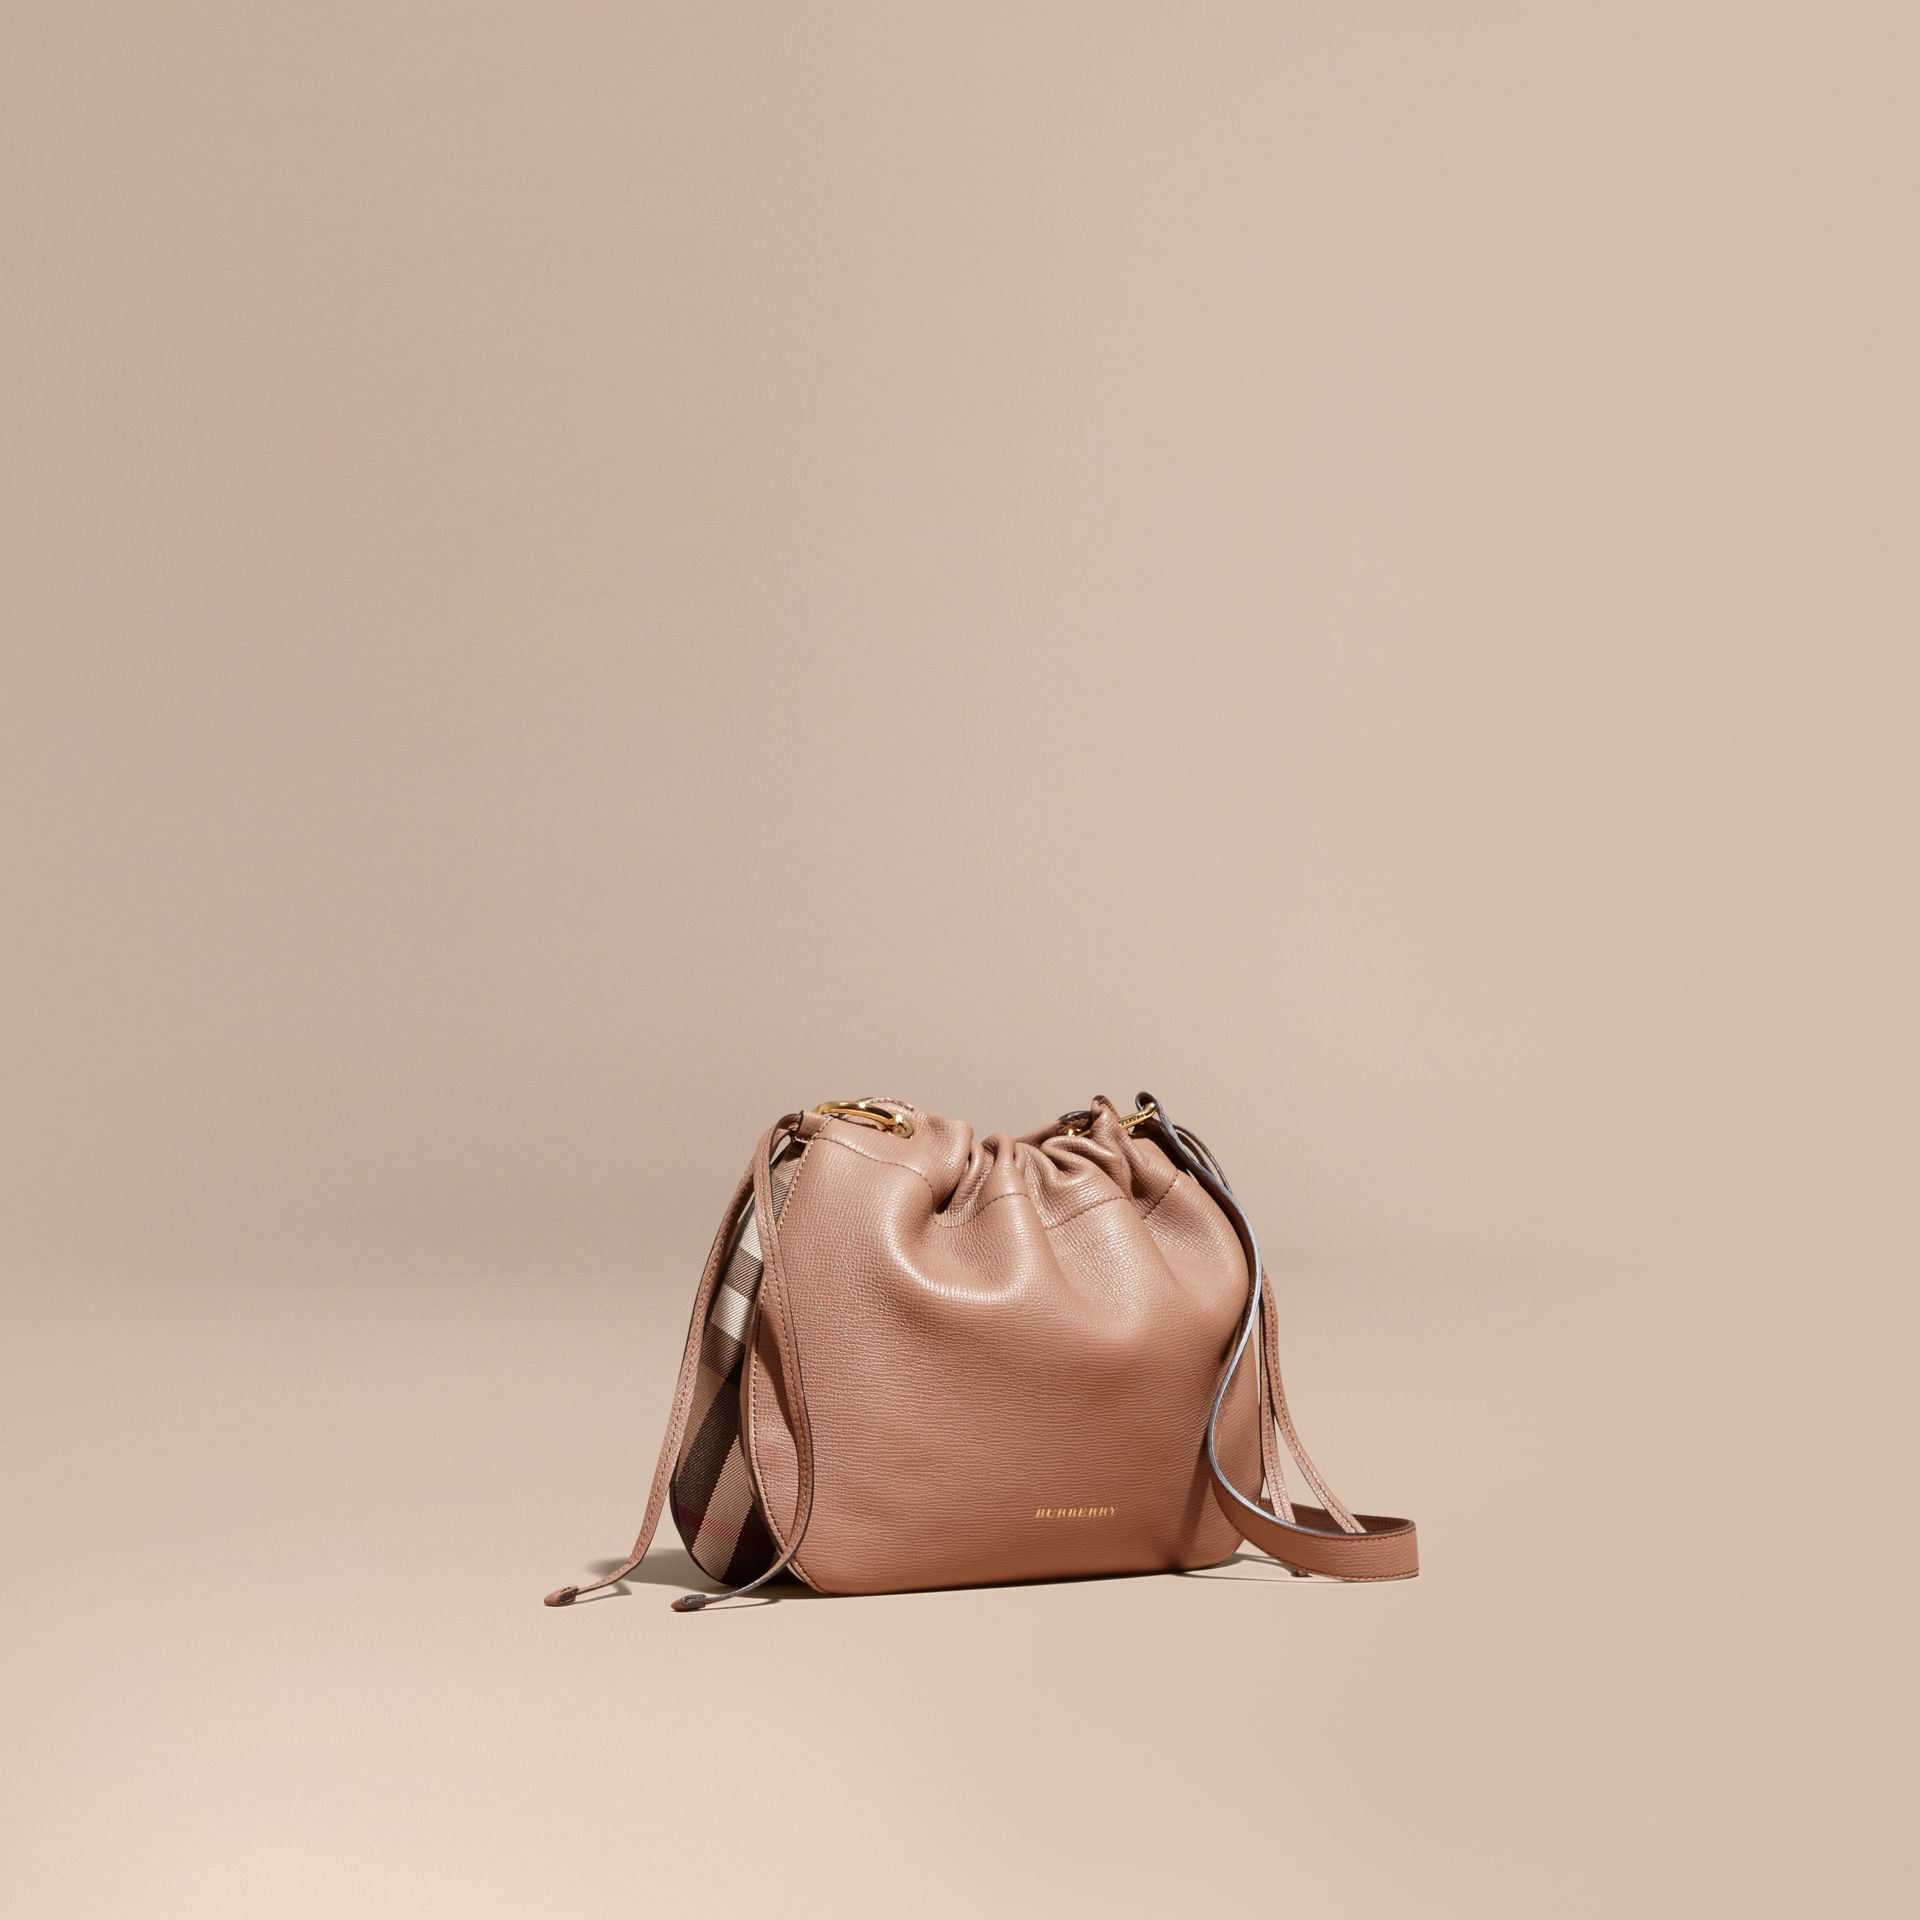 Grainy Leather and House Check Crossbody Bag in Dark Sand - gallery image 1